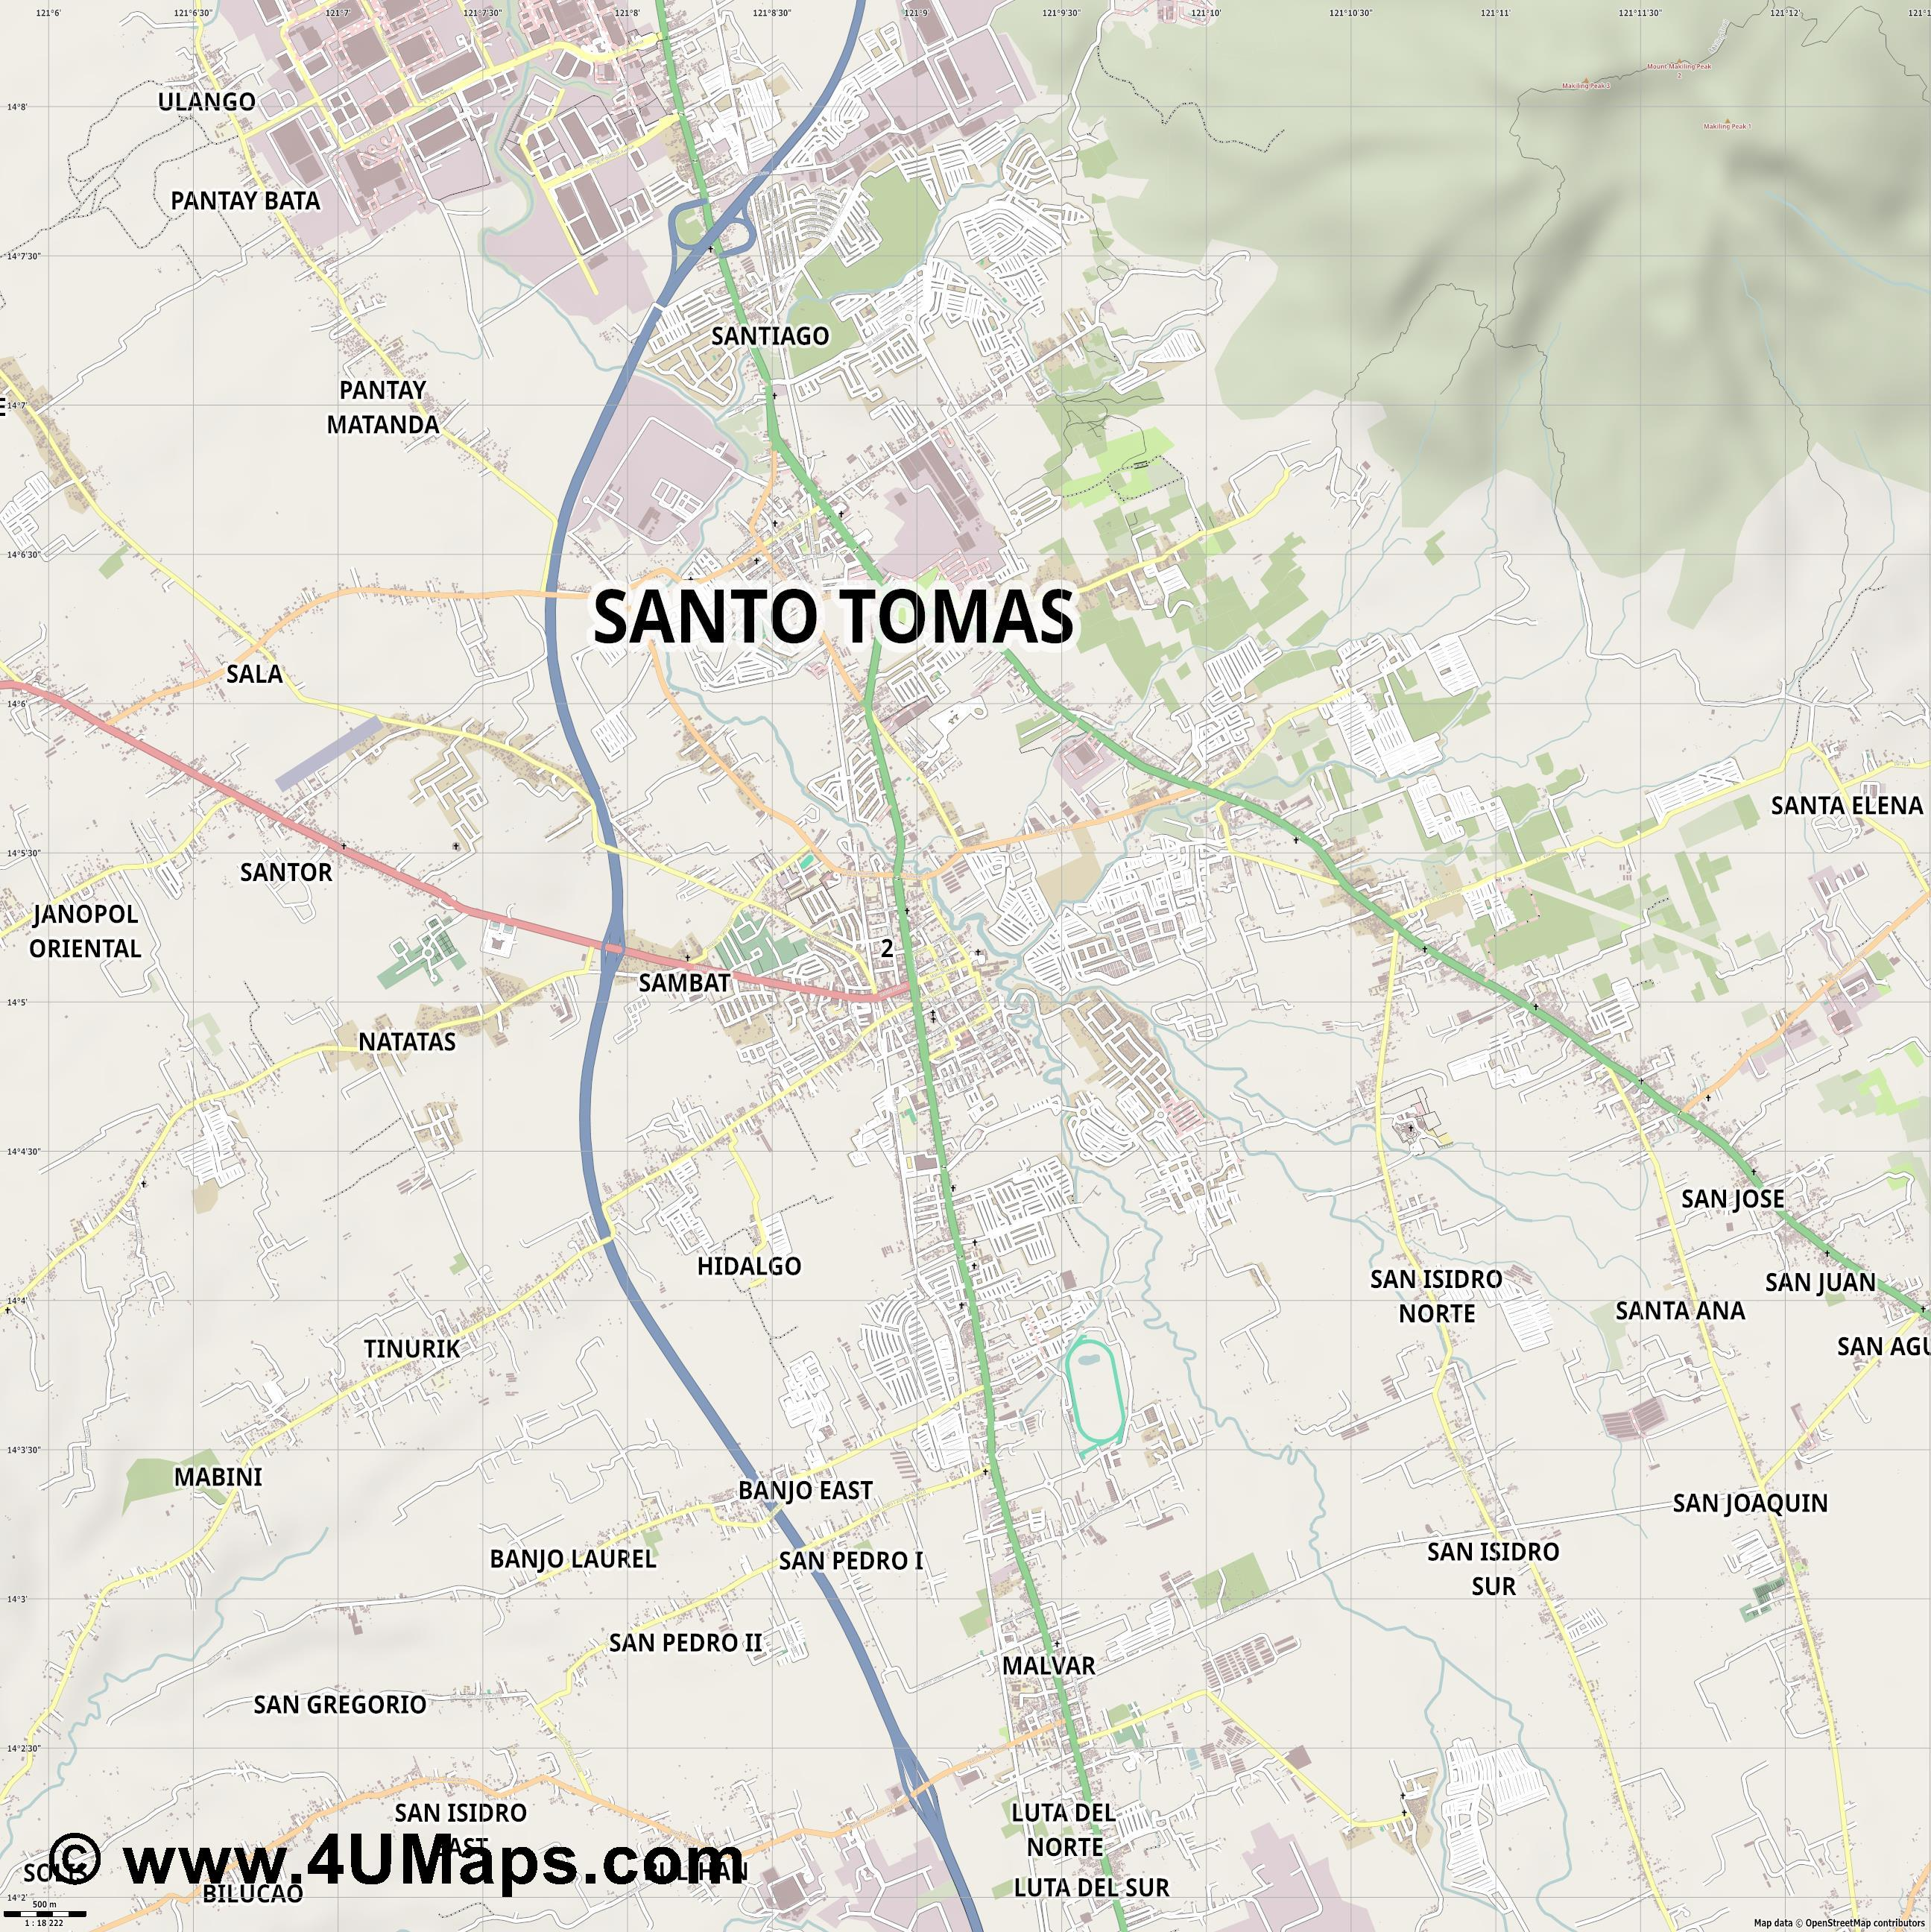 Tanauan  jpg ultra high detail preview vector city map